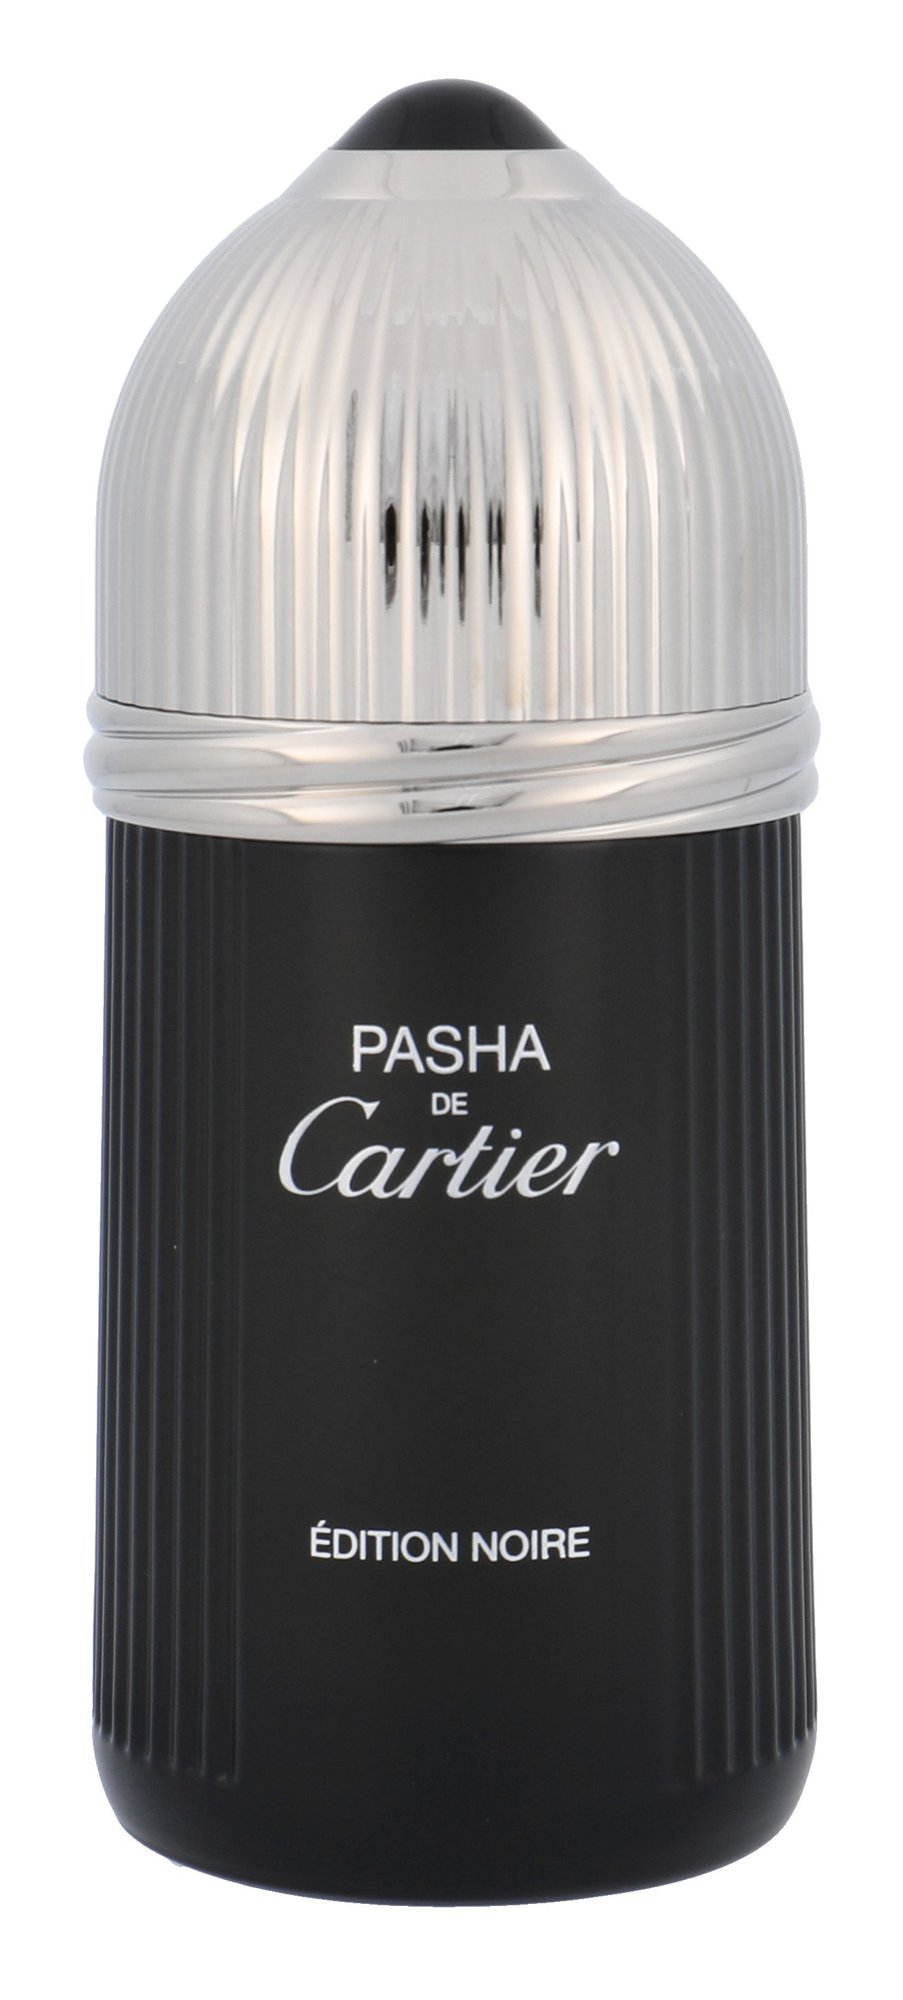 Cartier Pasha De Cartier Edition Noire EDT 100ml